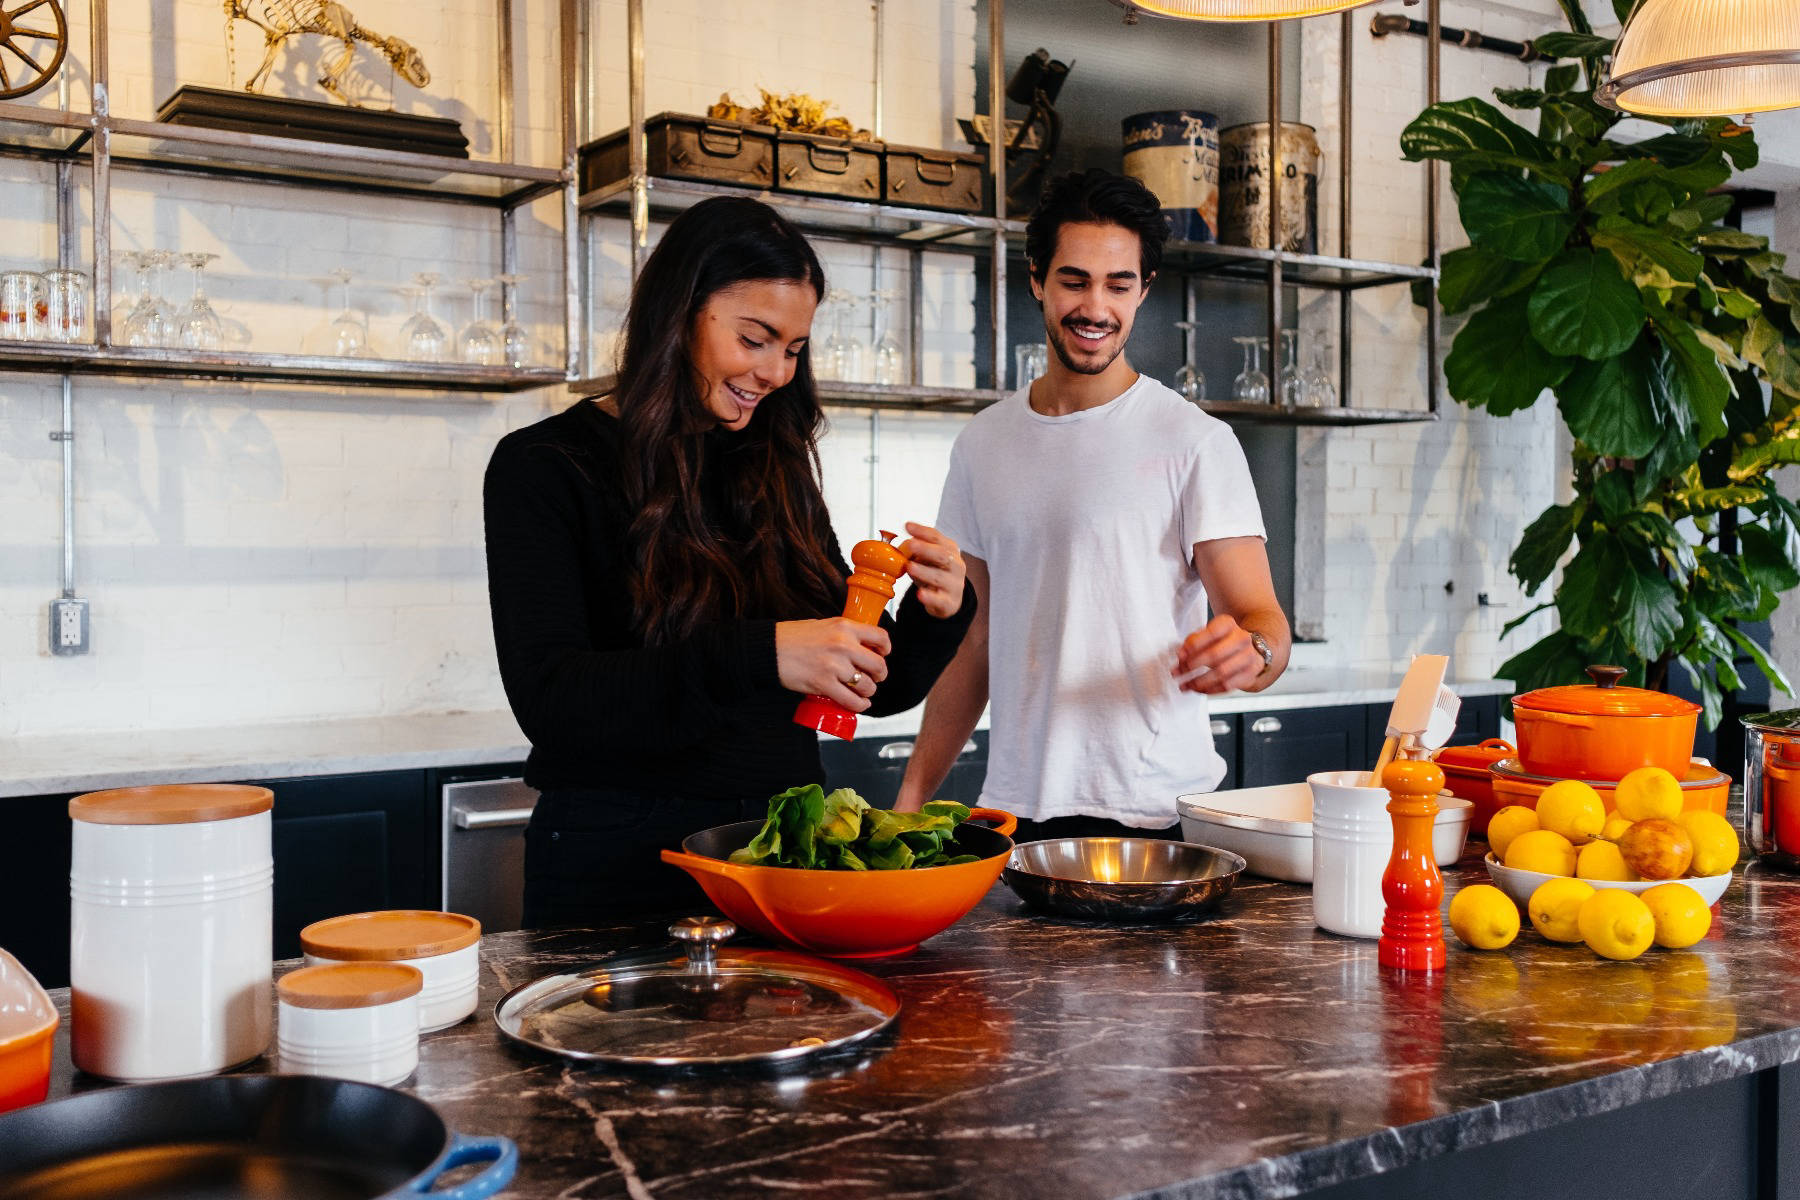 Couple making food in a bright kitchen